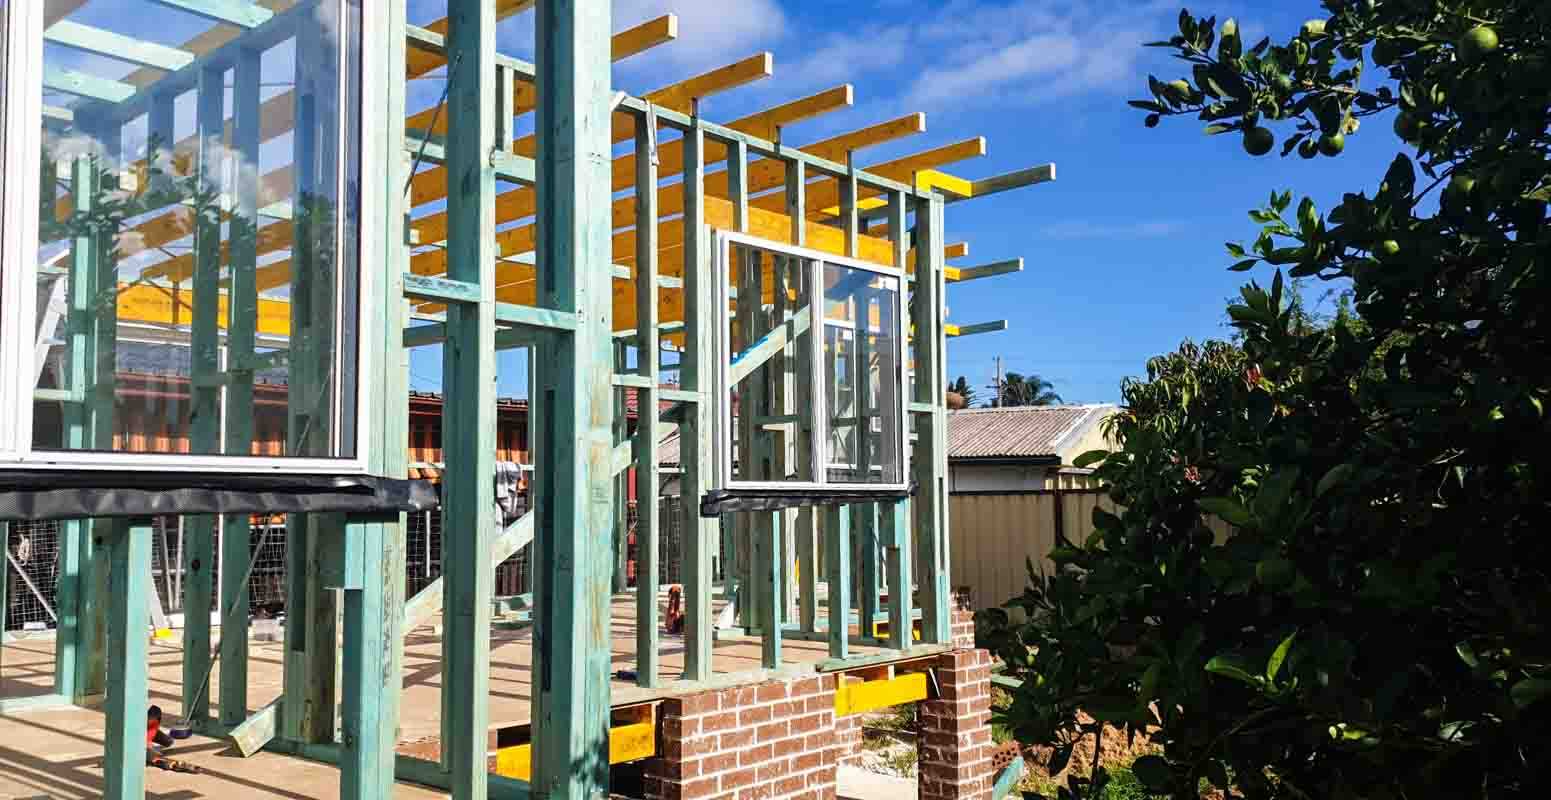 Small building renovation projects in Merrylands by a home renovation specialist using a licensed builder Dylan Doncevski from Passion Built doing framing for grannyflats or house extensions